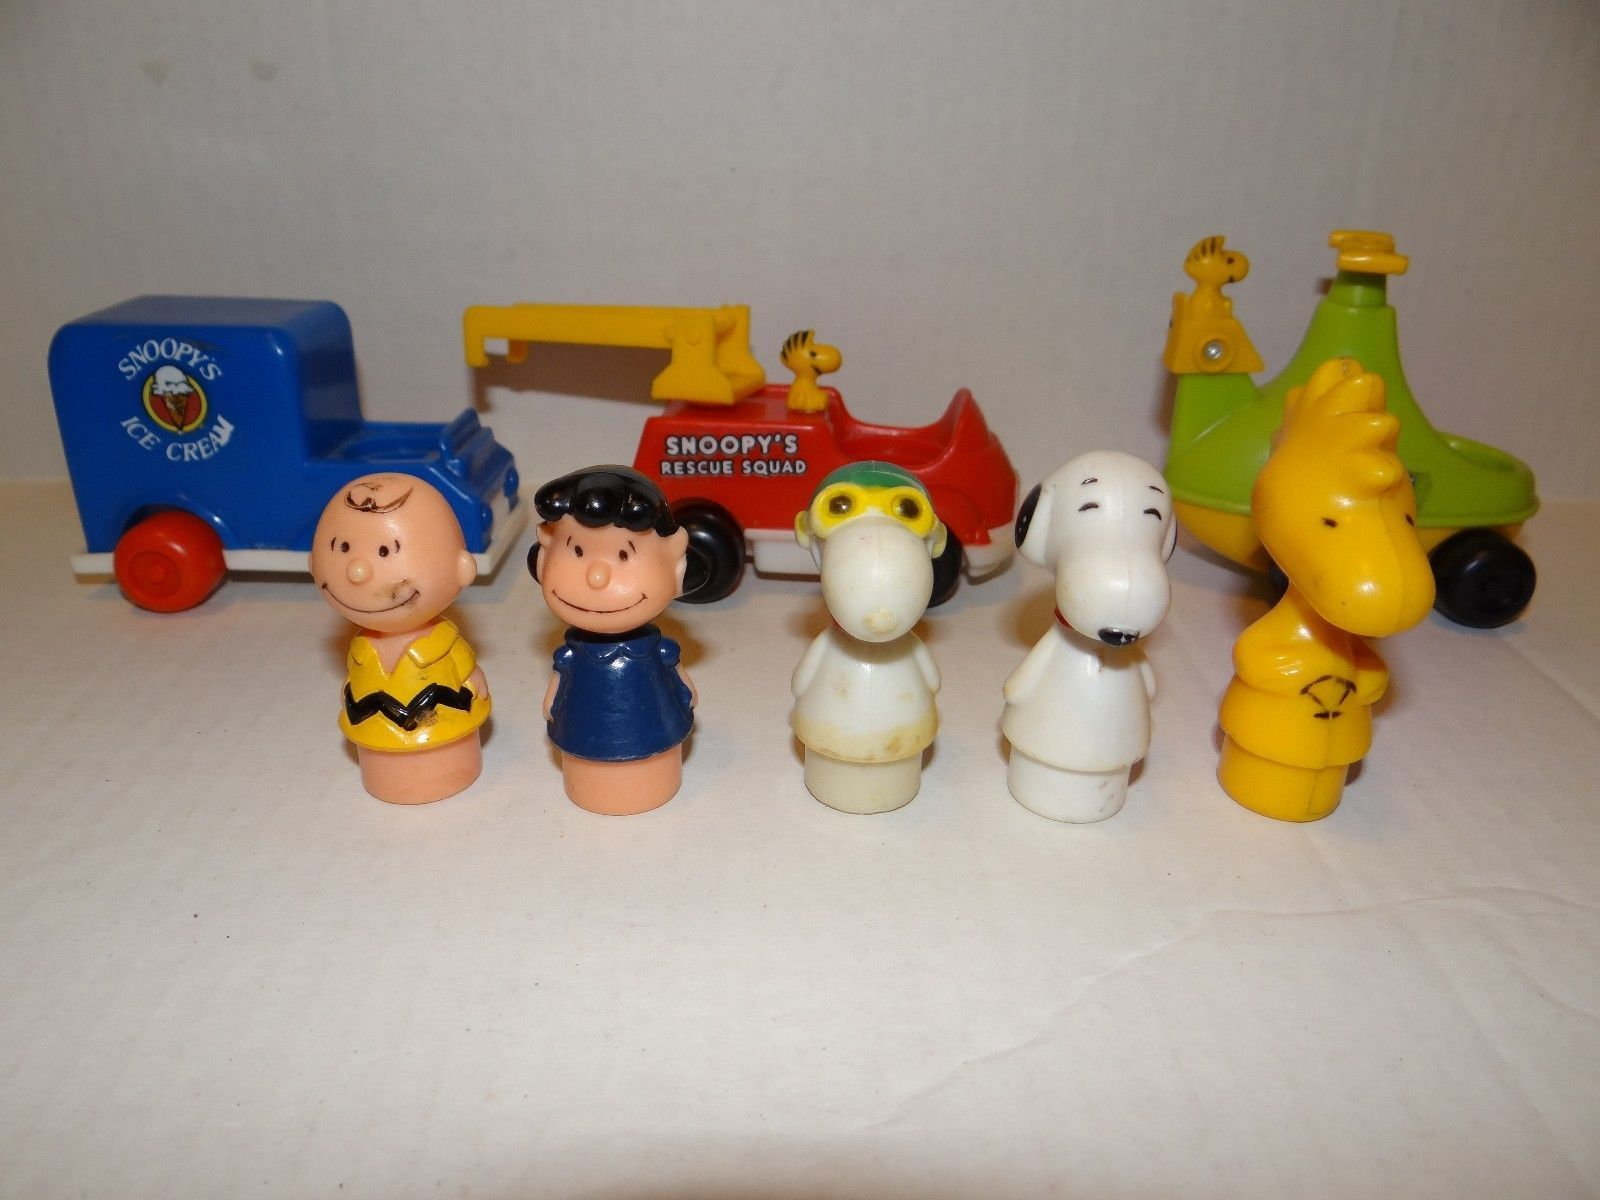 vintage snoopy charlie brown peanuts gang lot figures fisher price little people ebay snoopy. Black Bedroom Furniture Sets. Home Design Ideas